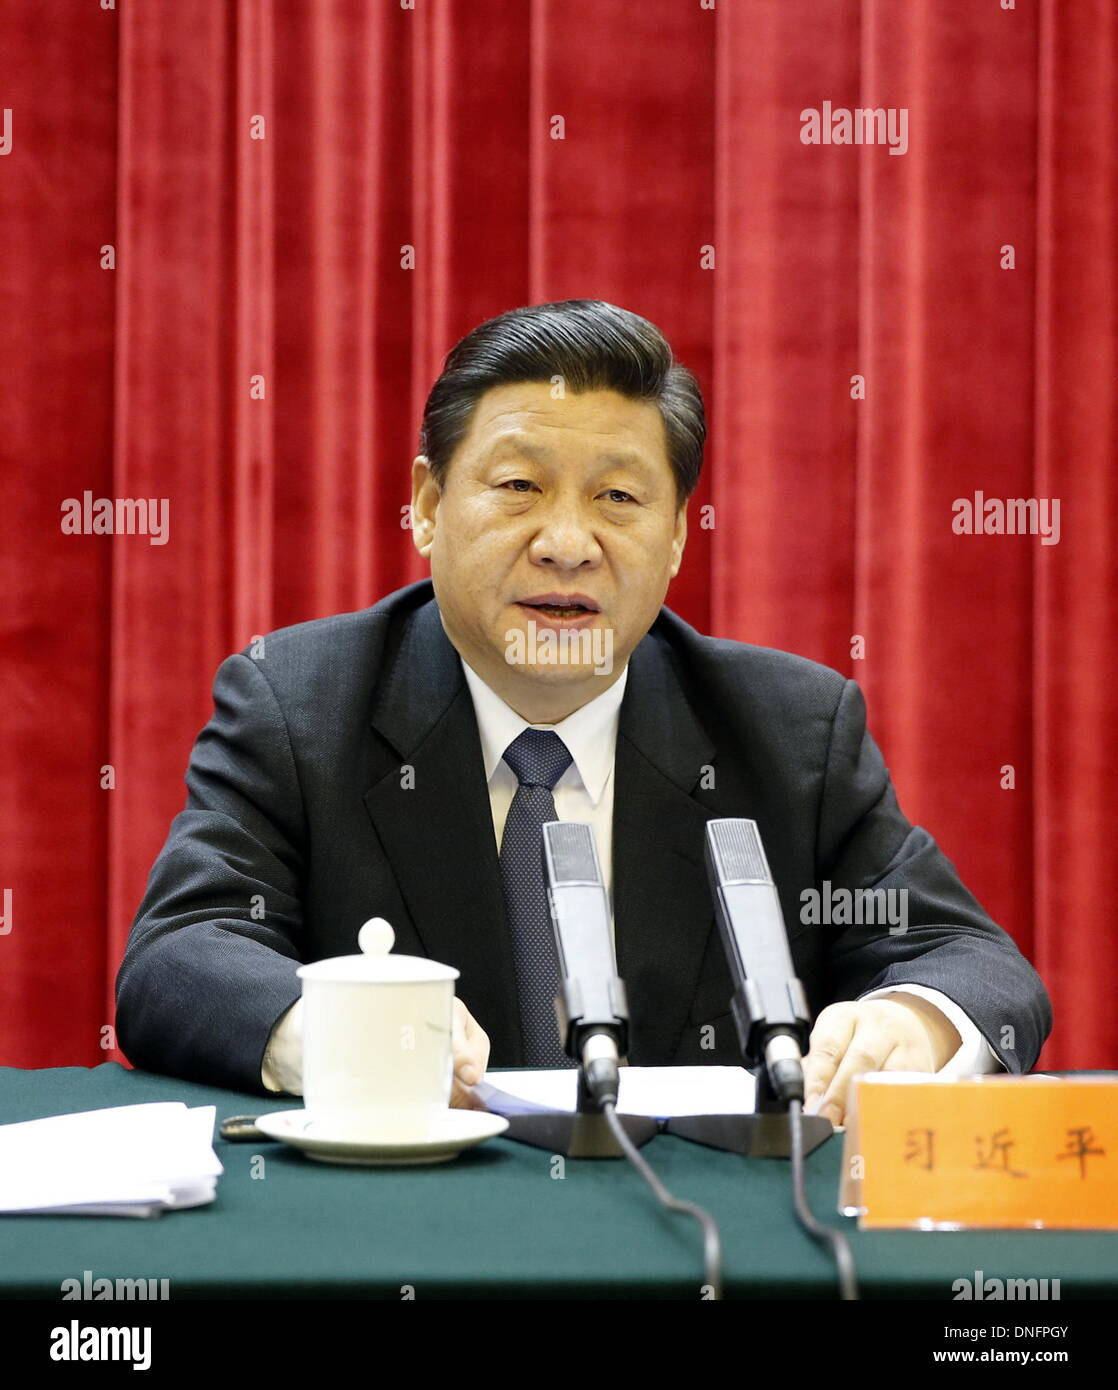 Beijing, China. 26th Dec, 2013. Chinese President Xi Jinping delivers a speech during a symposium commemorating the 120th anniversary of the birth of the late Chinese leader Mao Zedong in Beijing, capital of China, Dec. 26, 2013. Credit:  Ju Peng/Xinhua/Alamy Live News - Stock Image